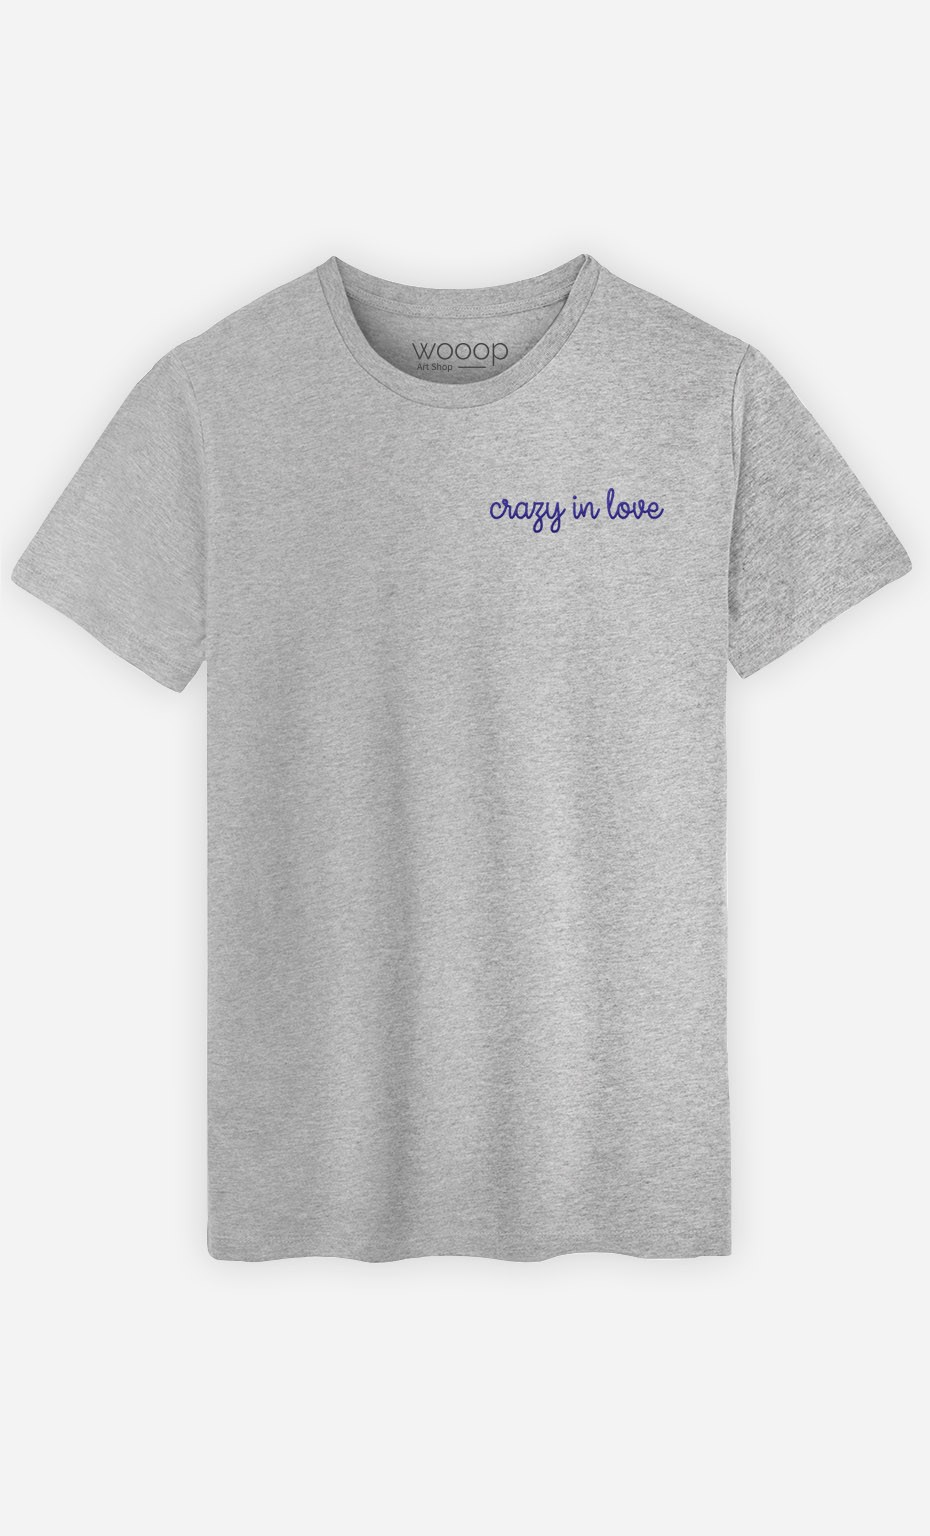 T-shirt Crazy in love - brodé